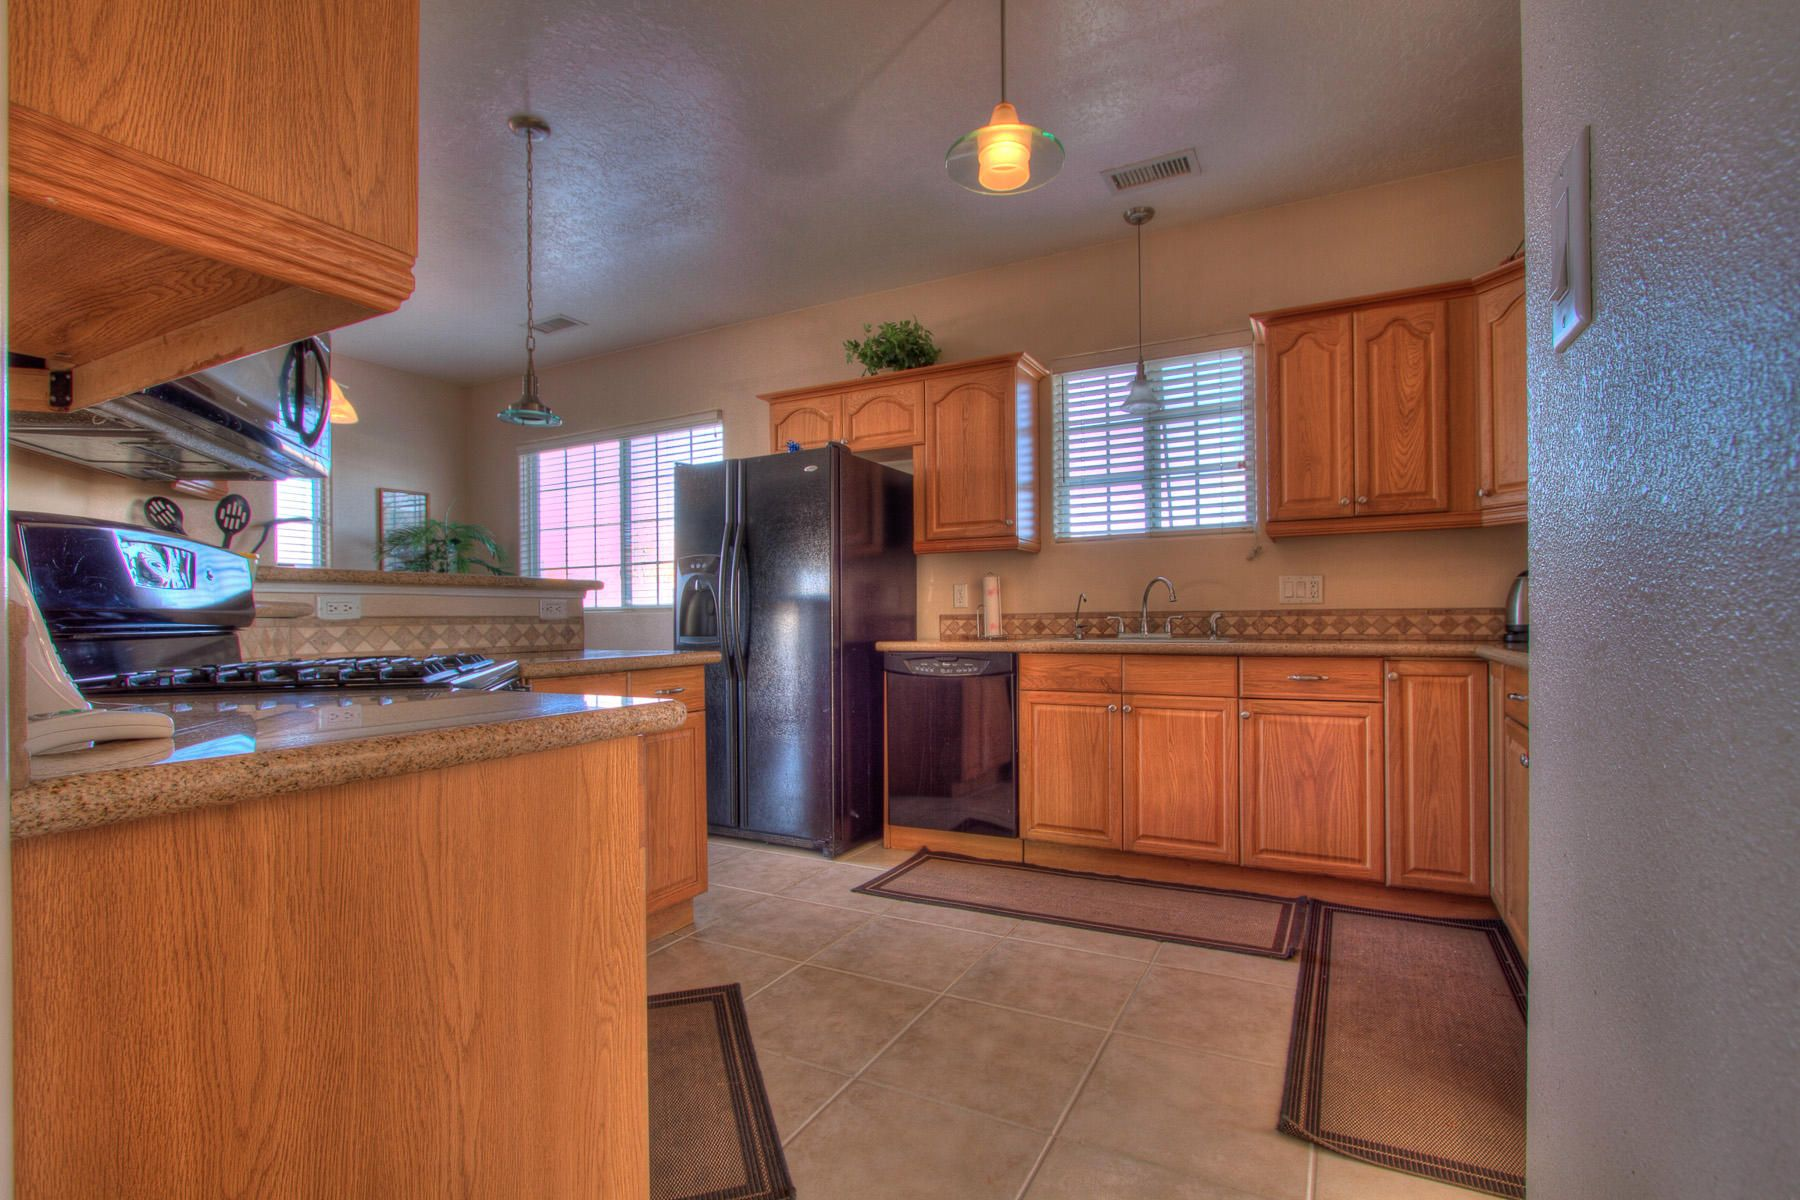 Beautiful Kitchen At 4903 Deborah Ave In Albuquerque New Mexico House For Sale Beautiful Kitchens Mexico House Kitchen